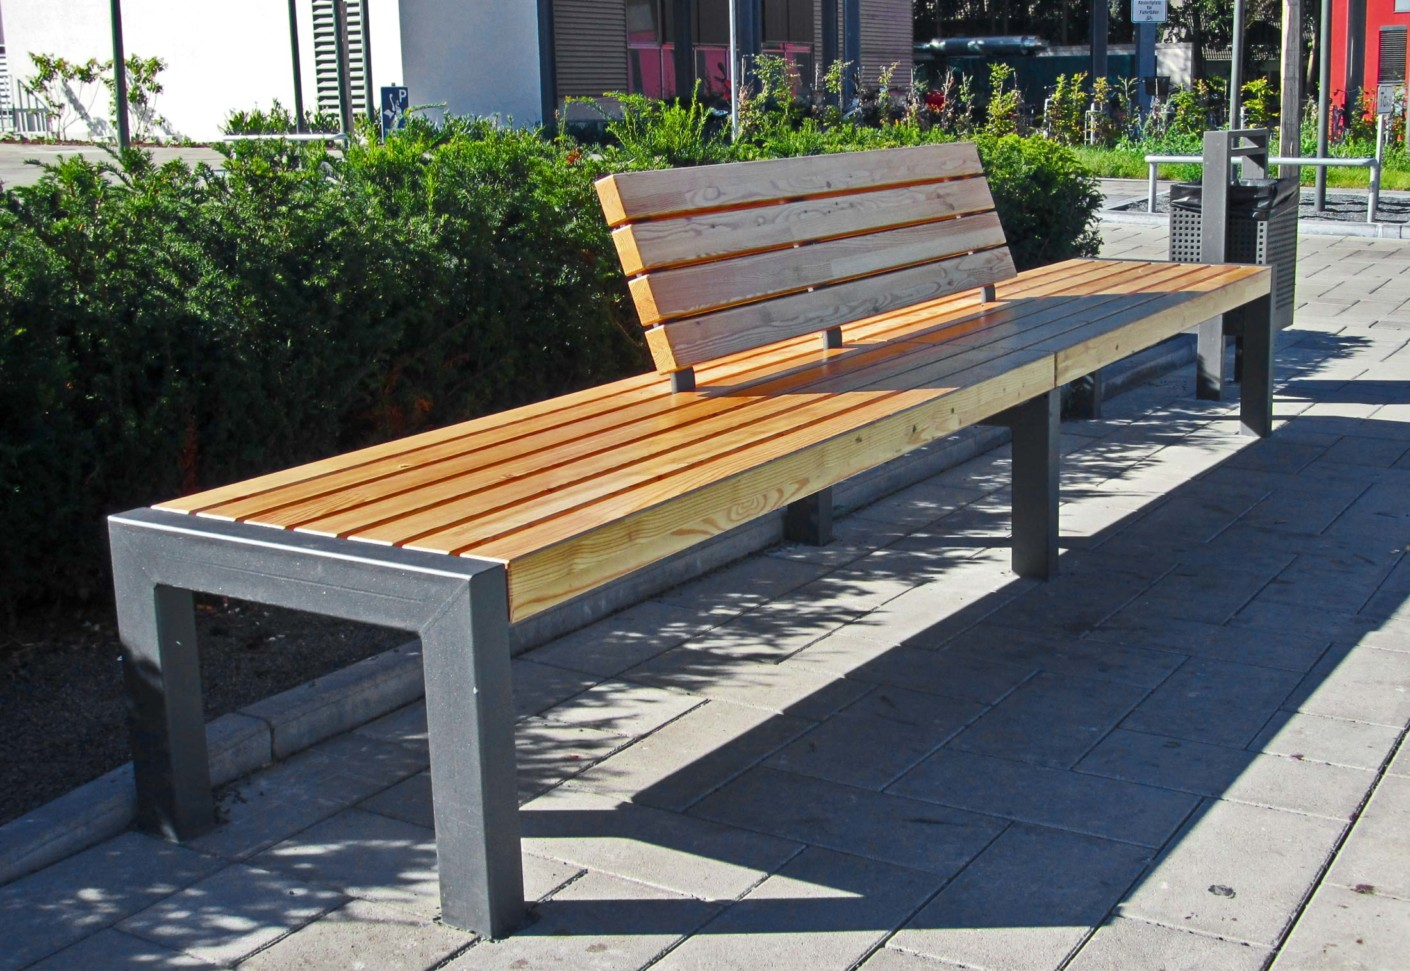 Vario bench leander by union public street furniture for Furniture u street dc